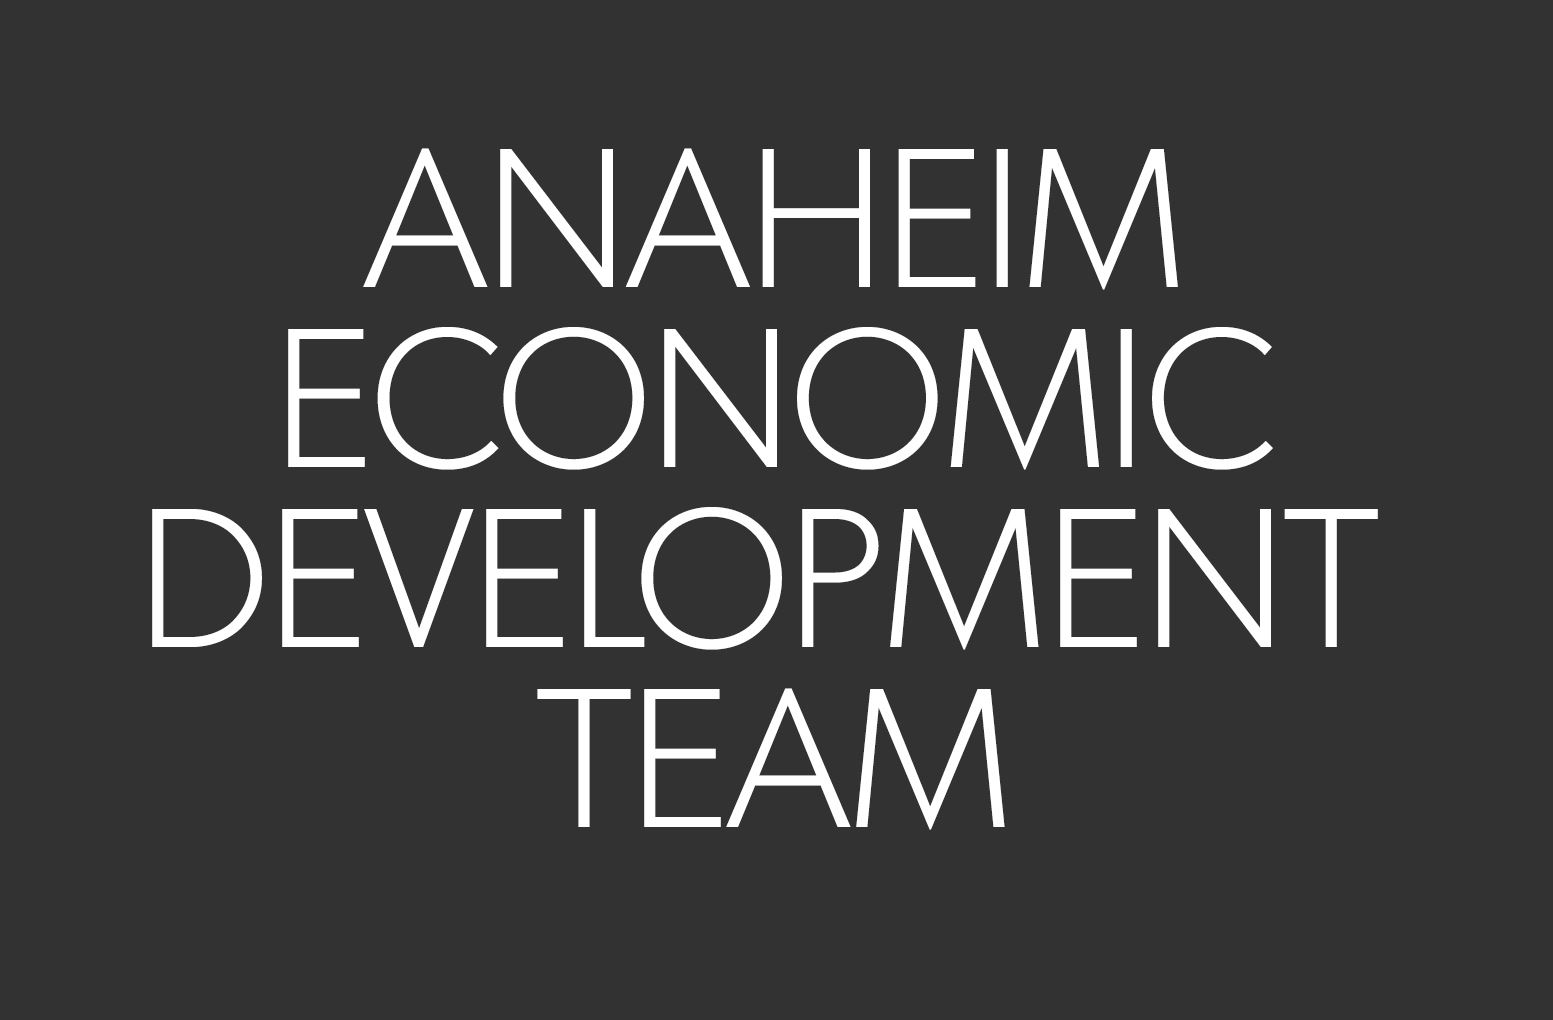 anaheim economic development team